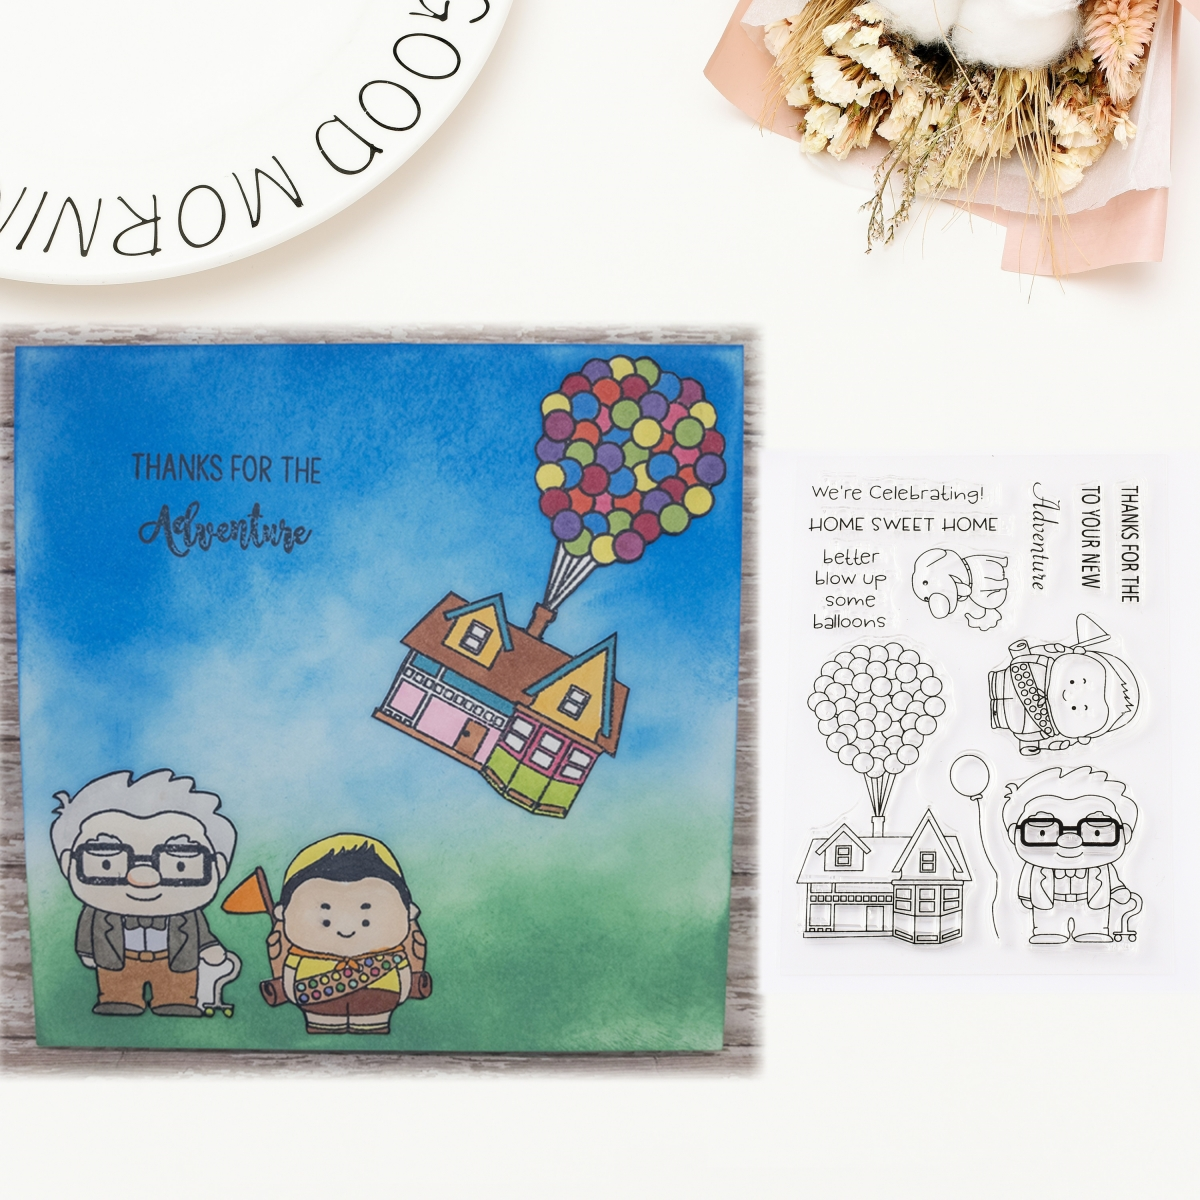 Old Man Balloon House Transparent Clear Silicone Stamp for Seal DIY Scrapbooking Photo Album Decorative Clear Stamp Craft Sheets